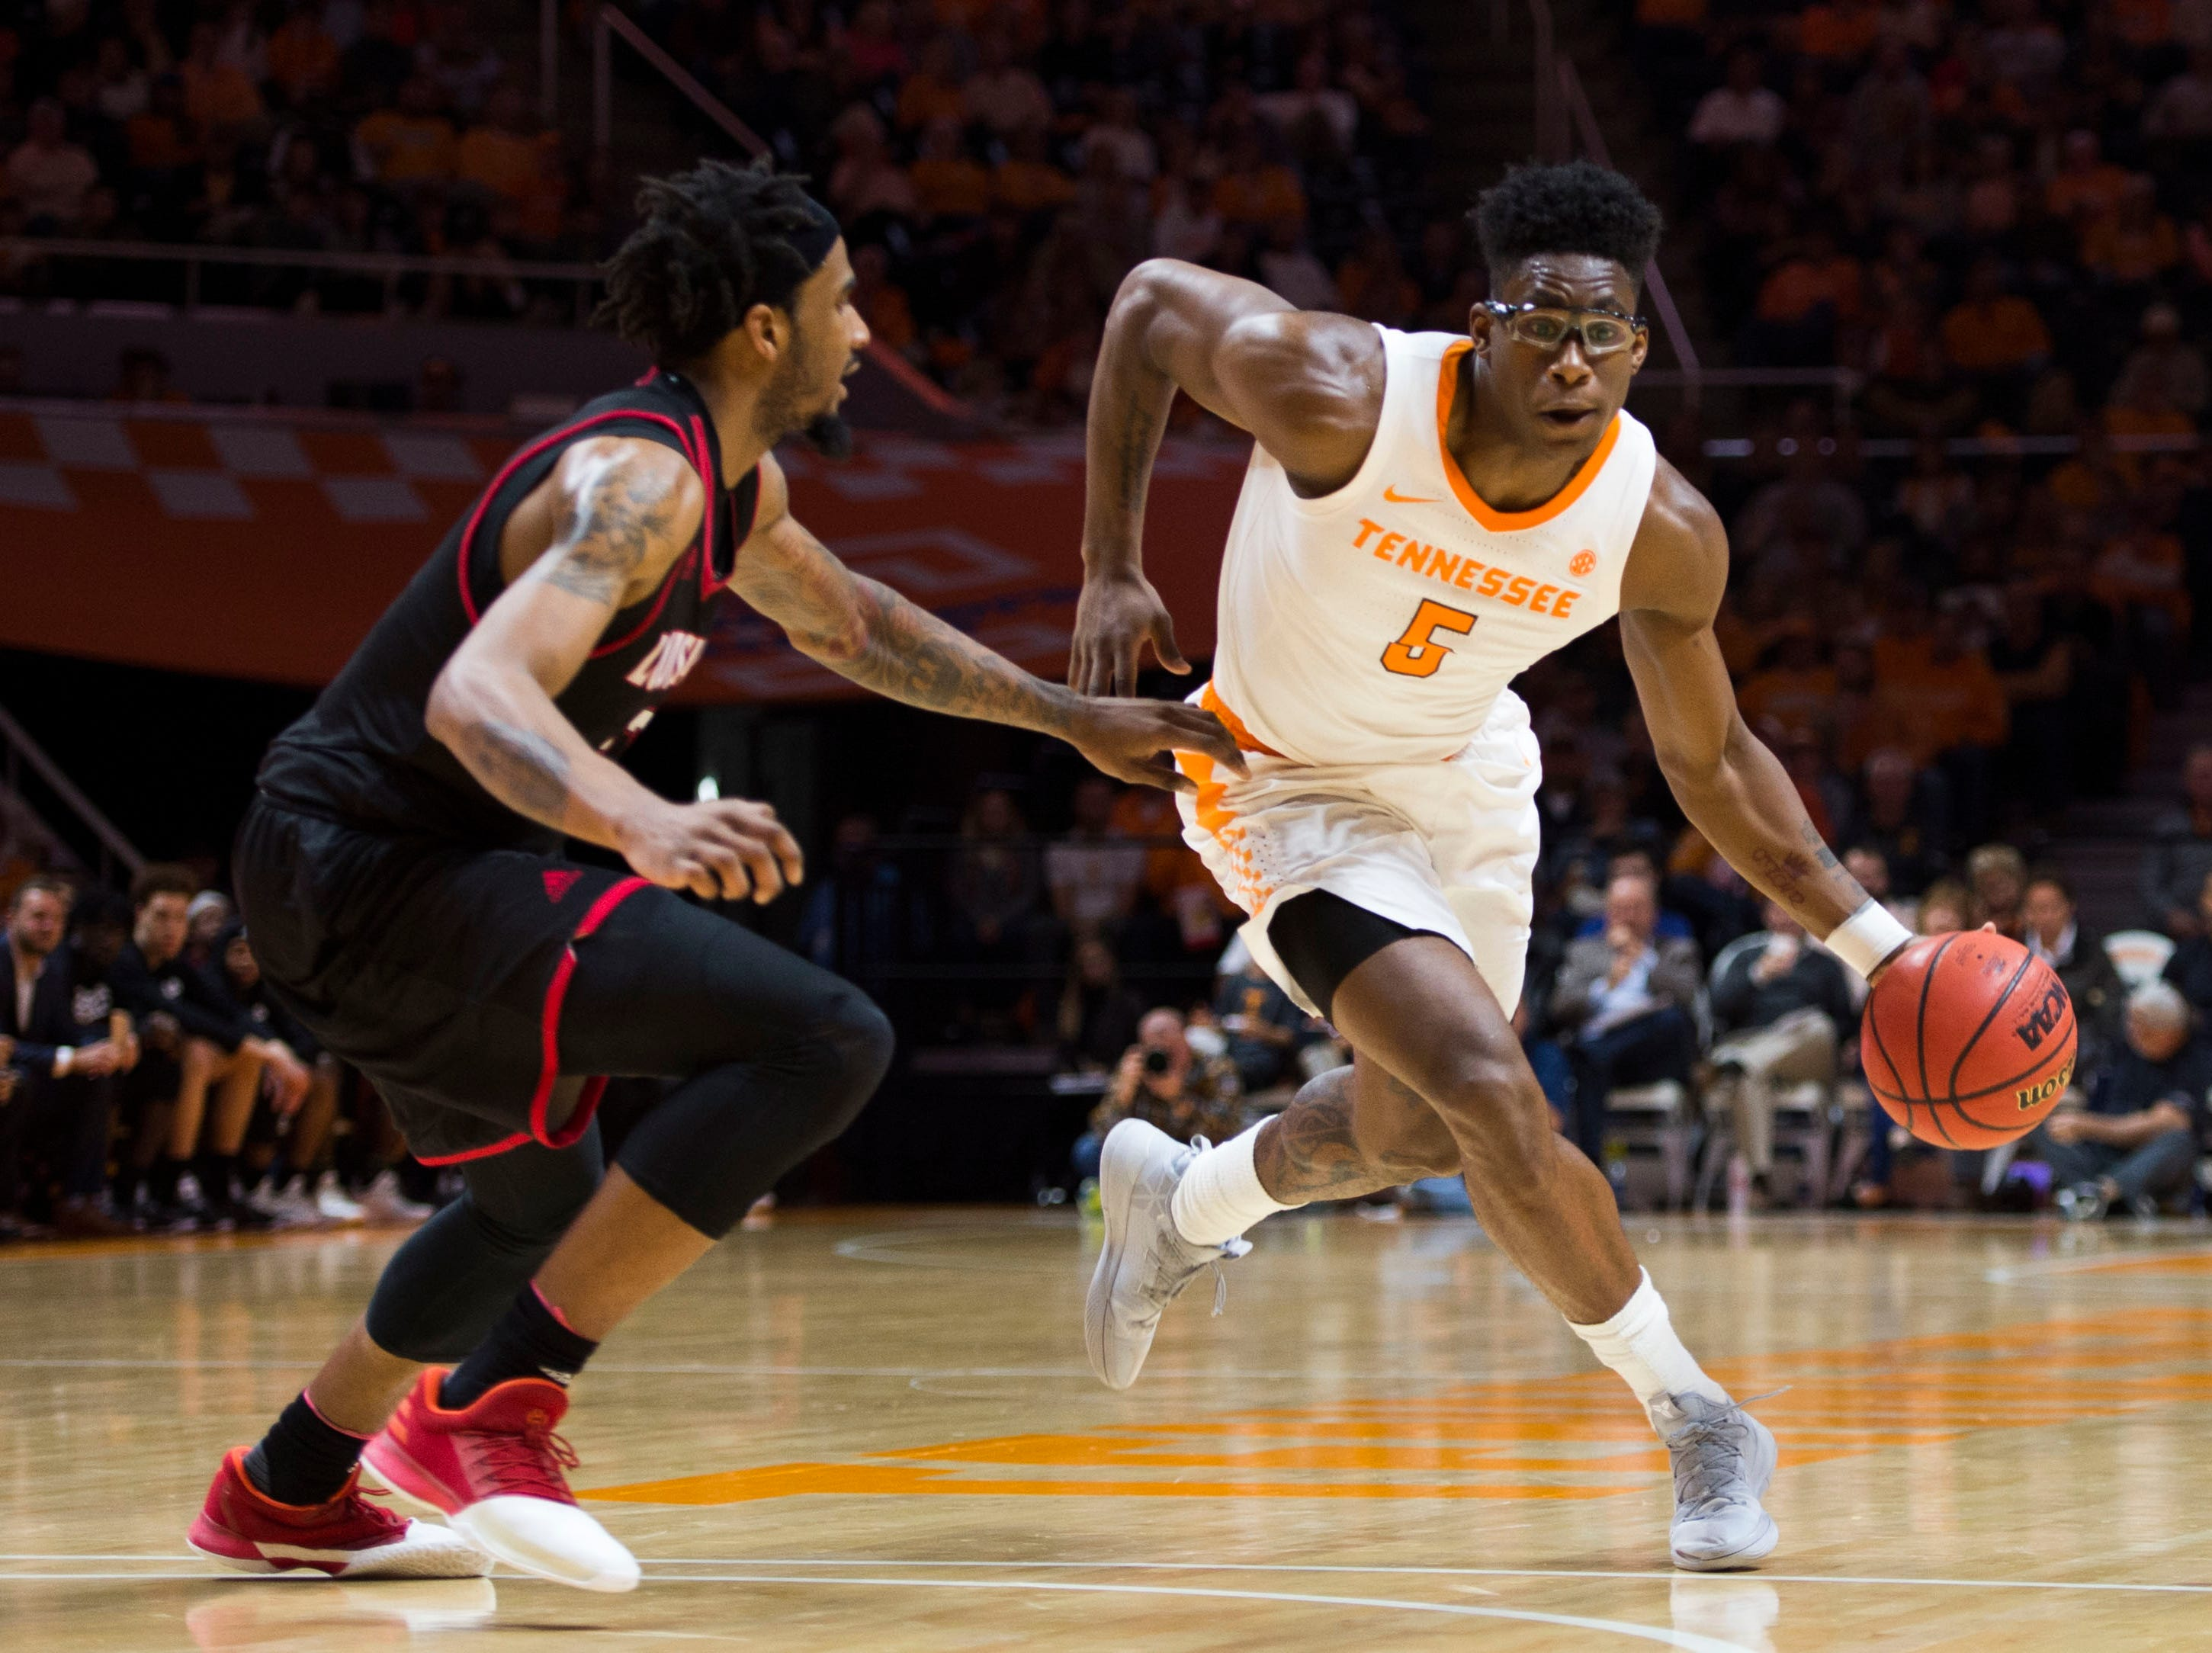 Tennessee's Admiral Schofield (5) charges towards the basket during a game between Tennessee and Louisiana in Thompson-Boling Arena Friday, Nov. 9, 2018. Tennessee defeated Louisiana 87-65.